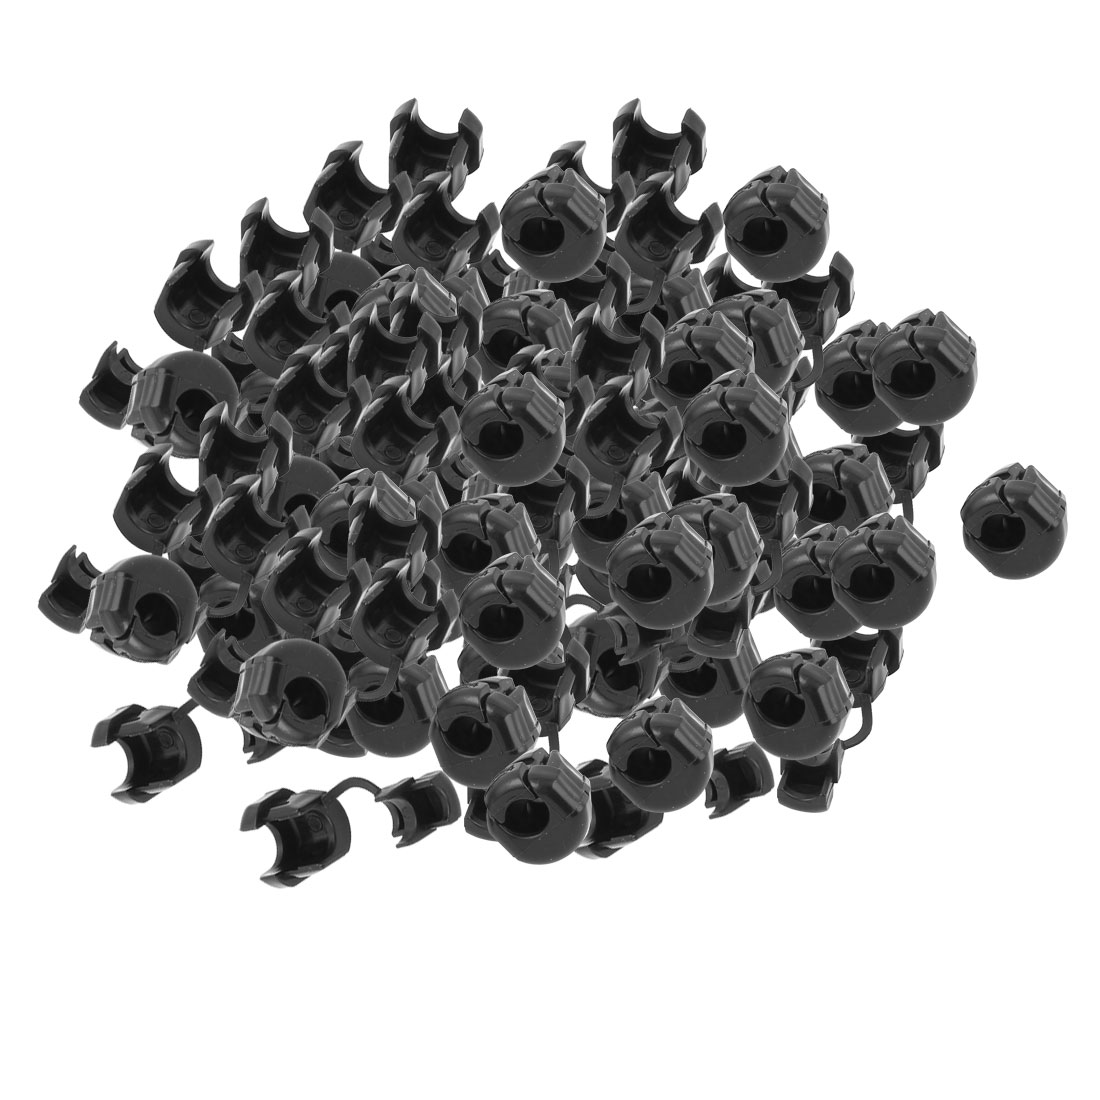 100Pcs HDB-6P-4 Round Cable Wire Strain Relief Bush Grommet 15mm Length